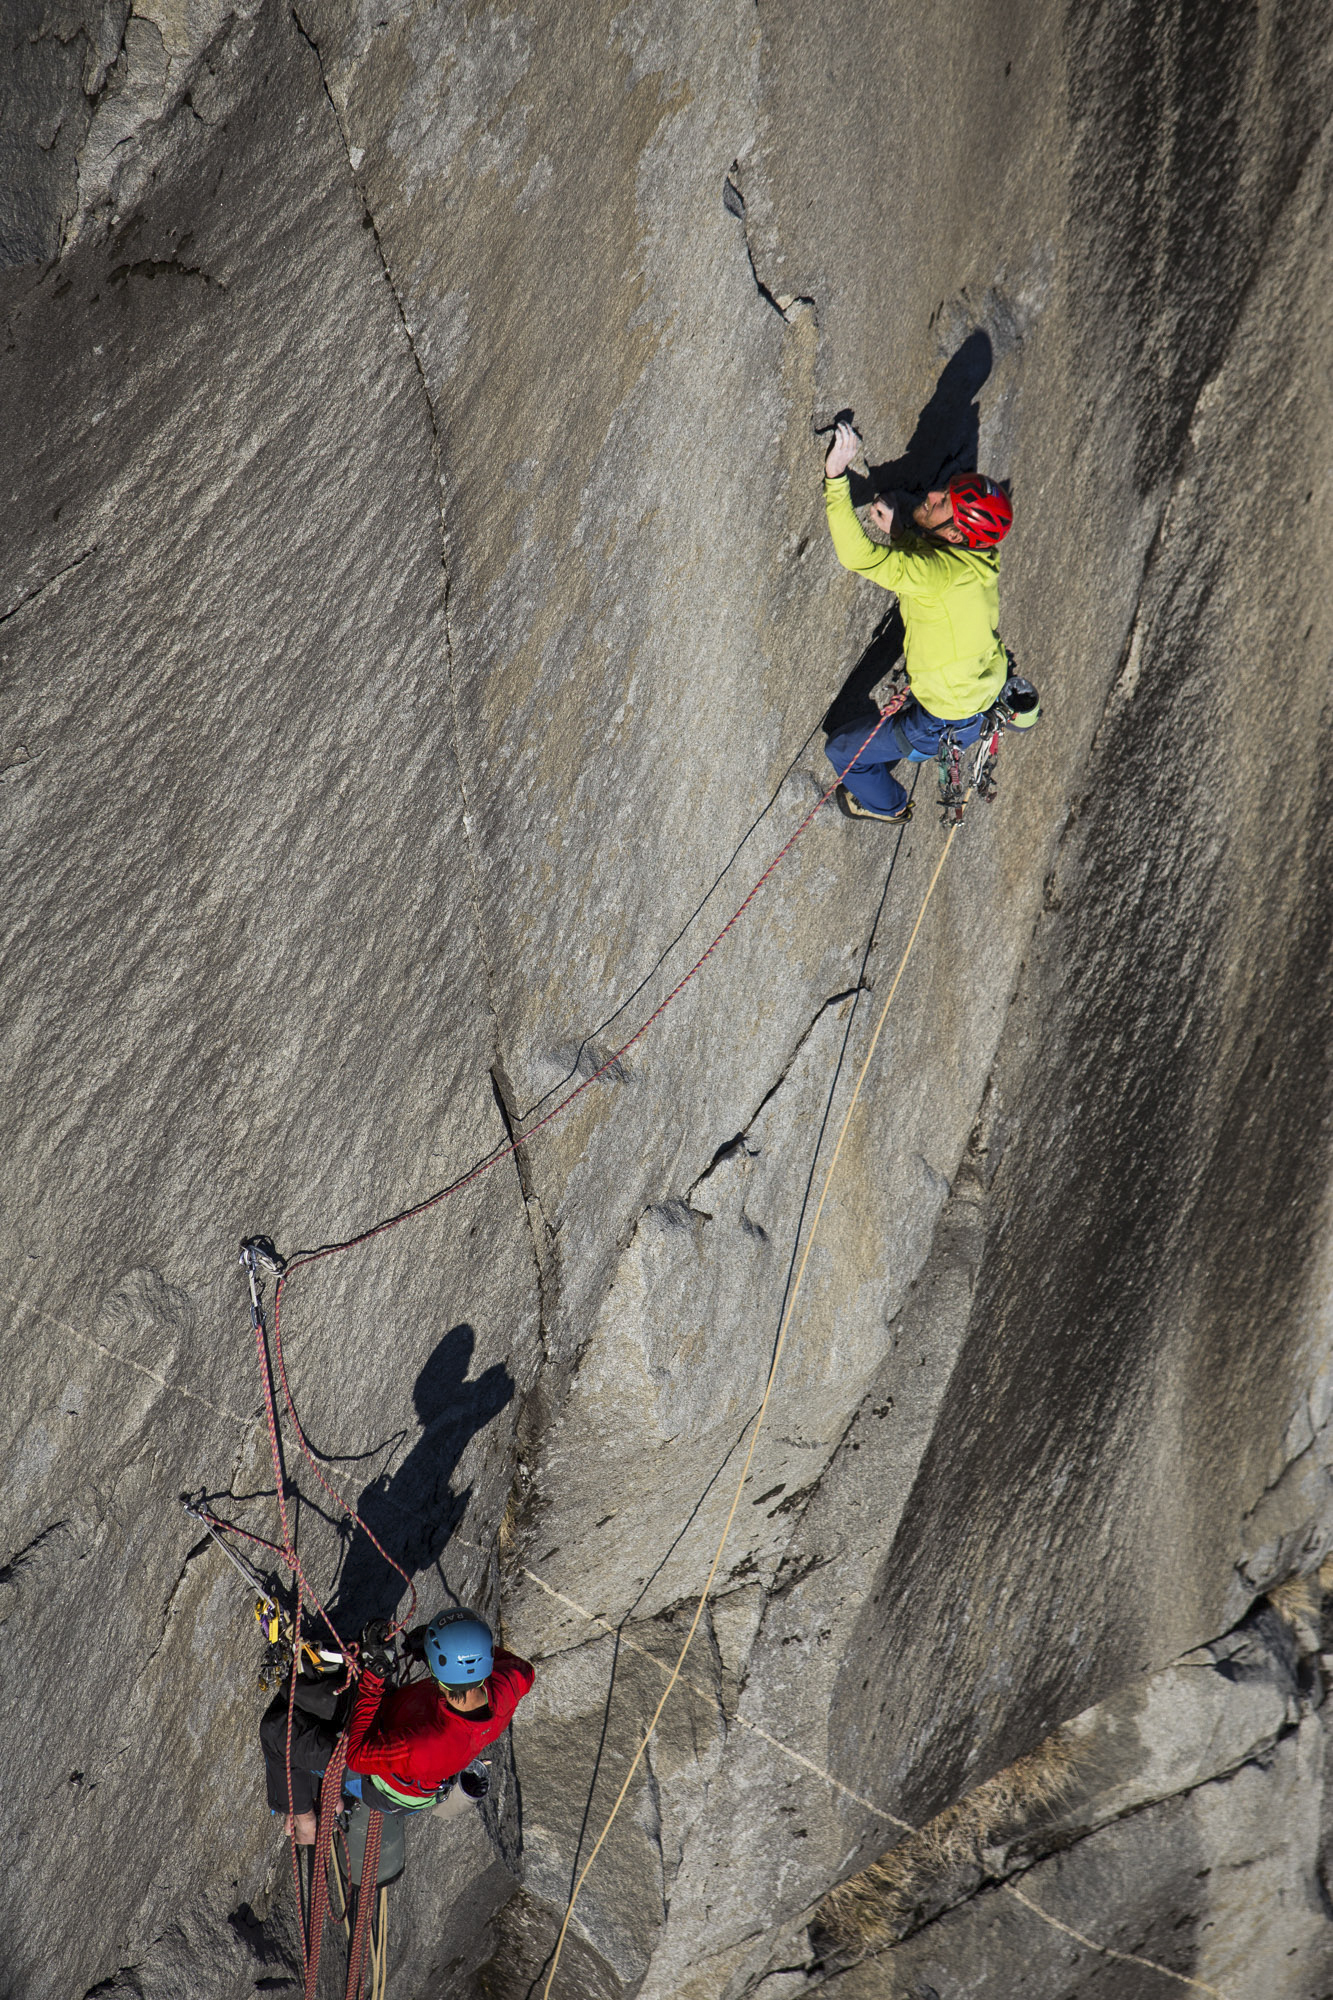 0a57ee33 Tommy Caldwell, who free climbed Dawn Wall, says effects of climate change  on Yosemite 'shocking' - SFGate